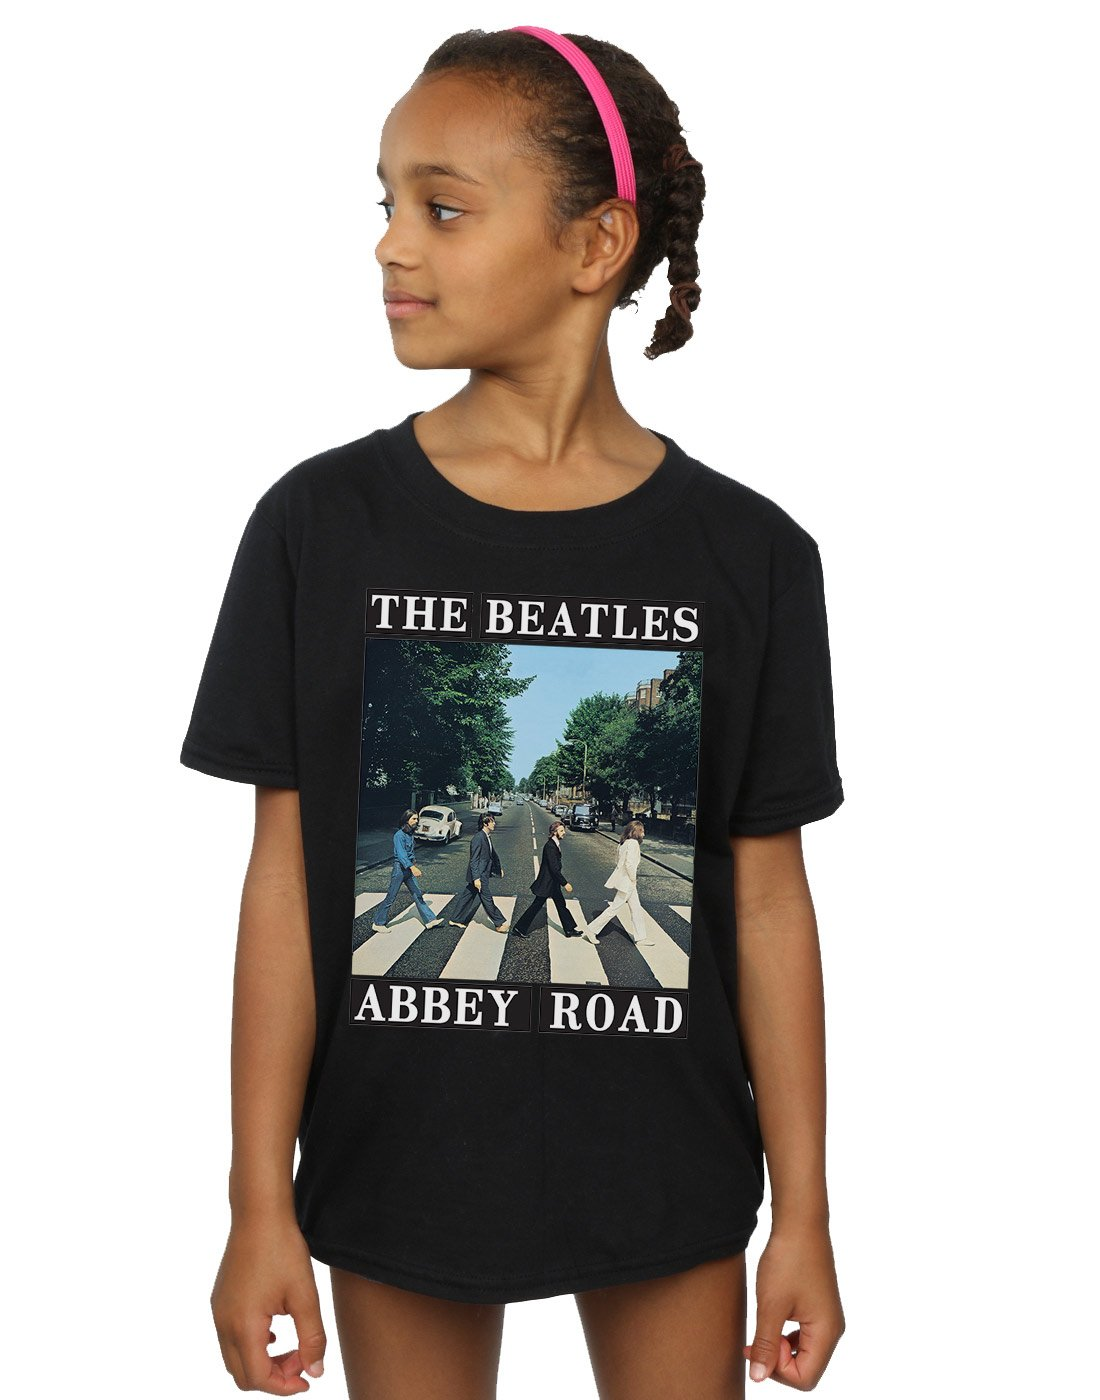 The Girls Abbey Road T Shirt 4966